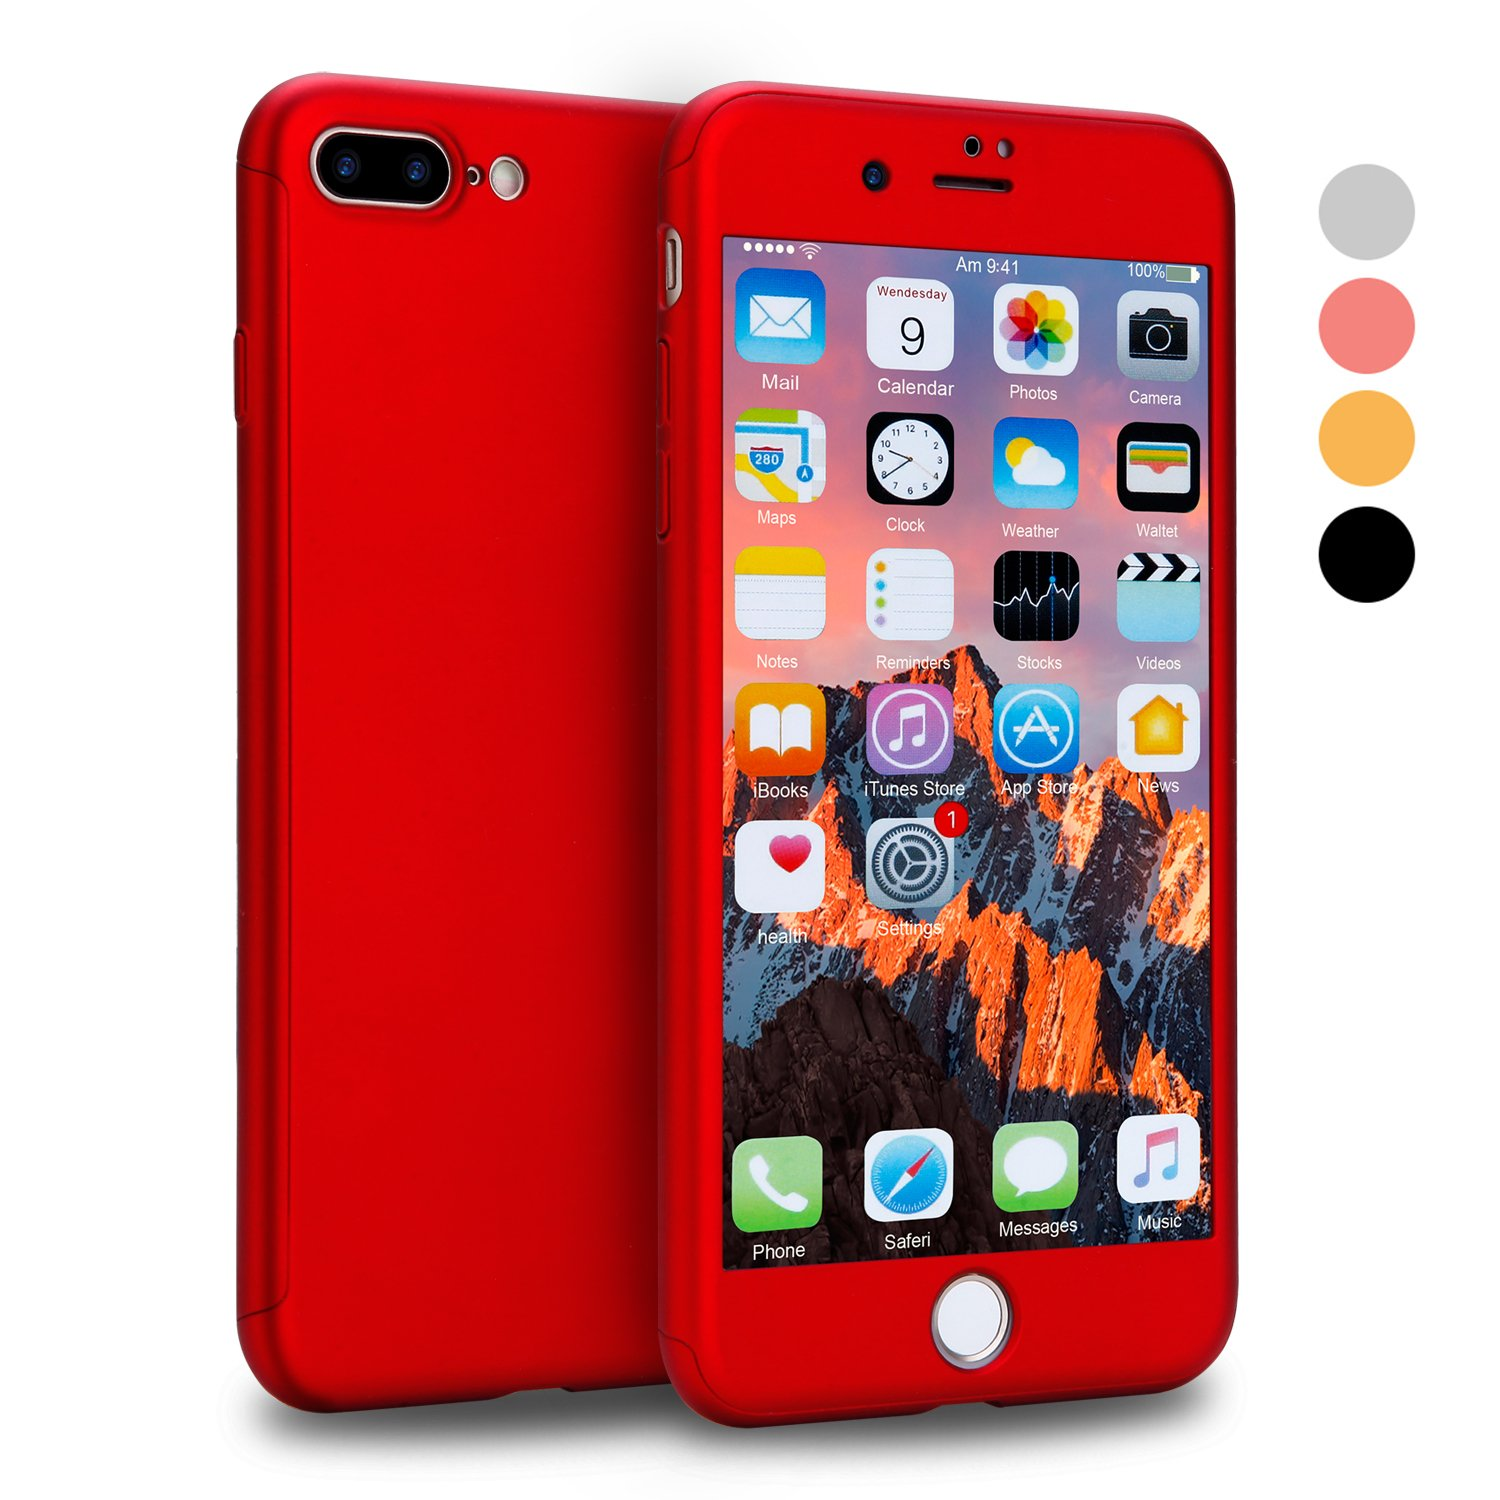 iPhone 8 Plus Case, VANSIN 360 Full Body Protection Hard Slim Case Coated Non Slip Matte Surface with Tempered Glass Screen Protector for Apple iPhone 8 Plus Only (5.5-inch) - Red